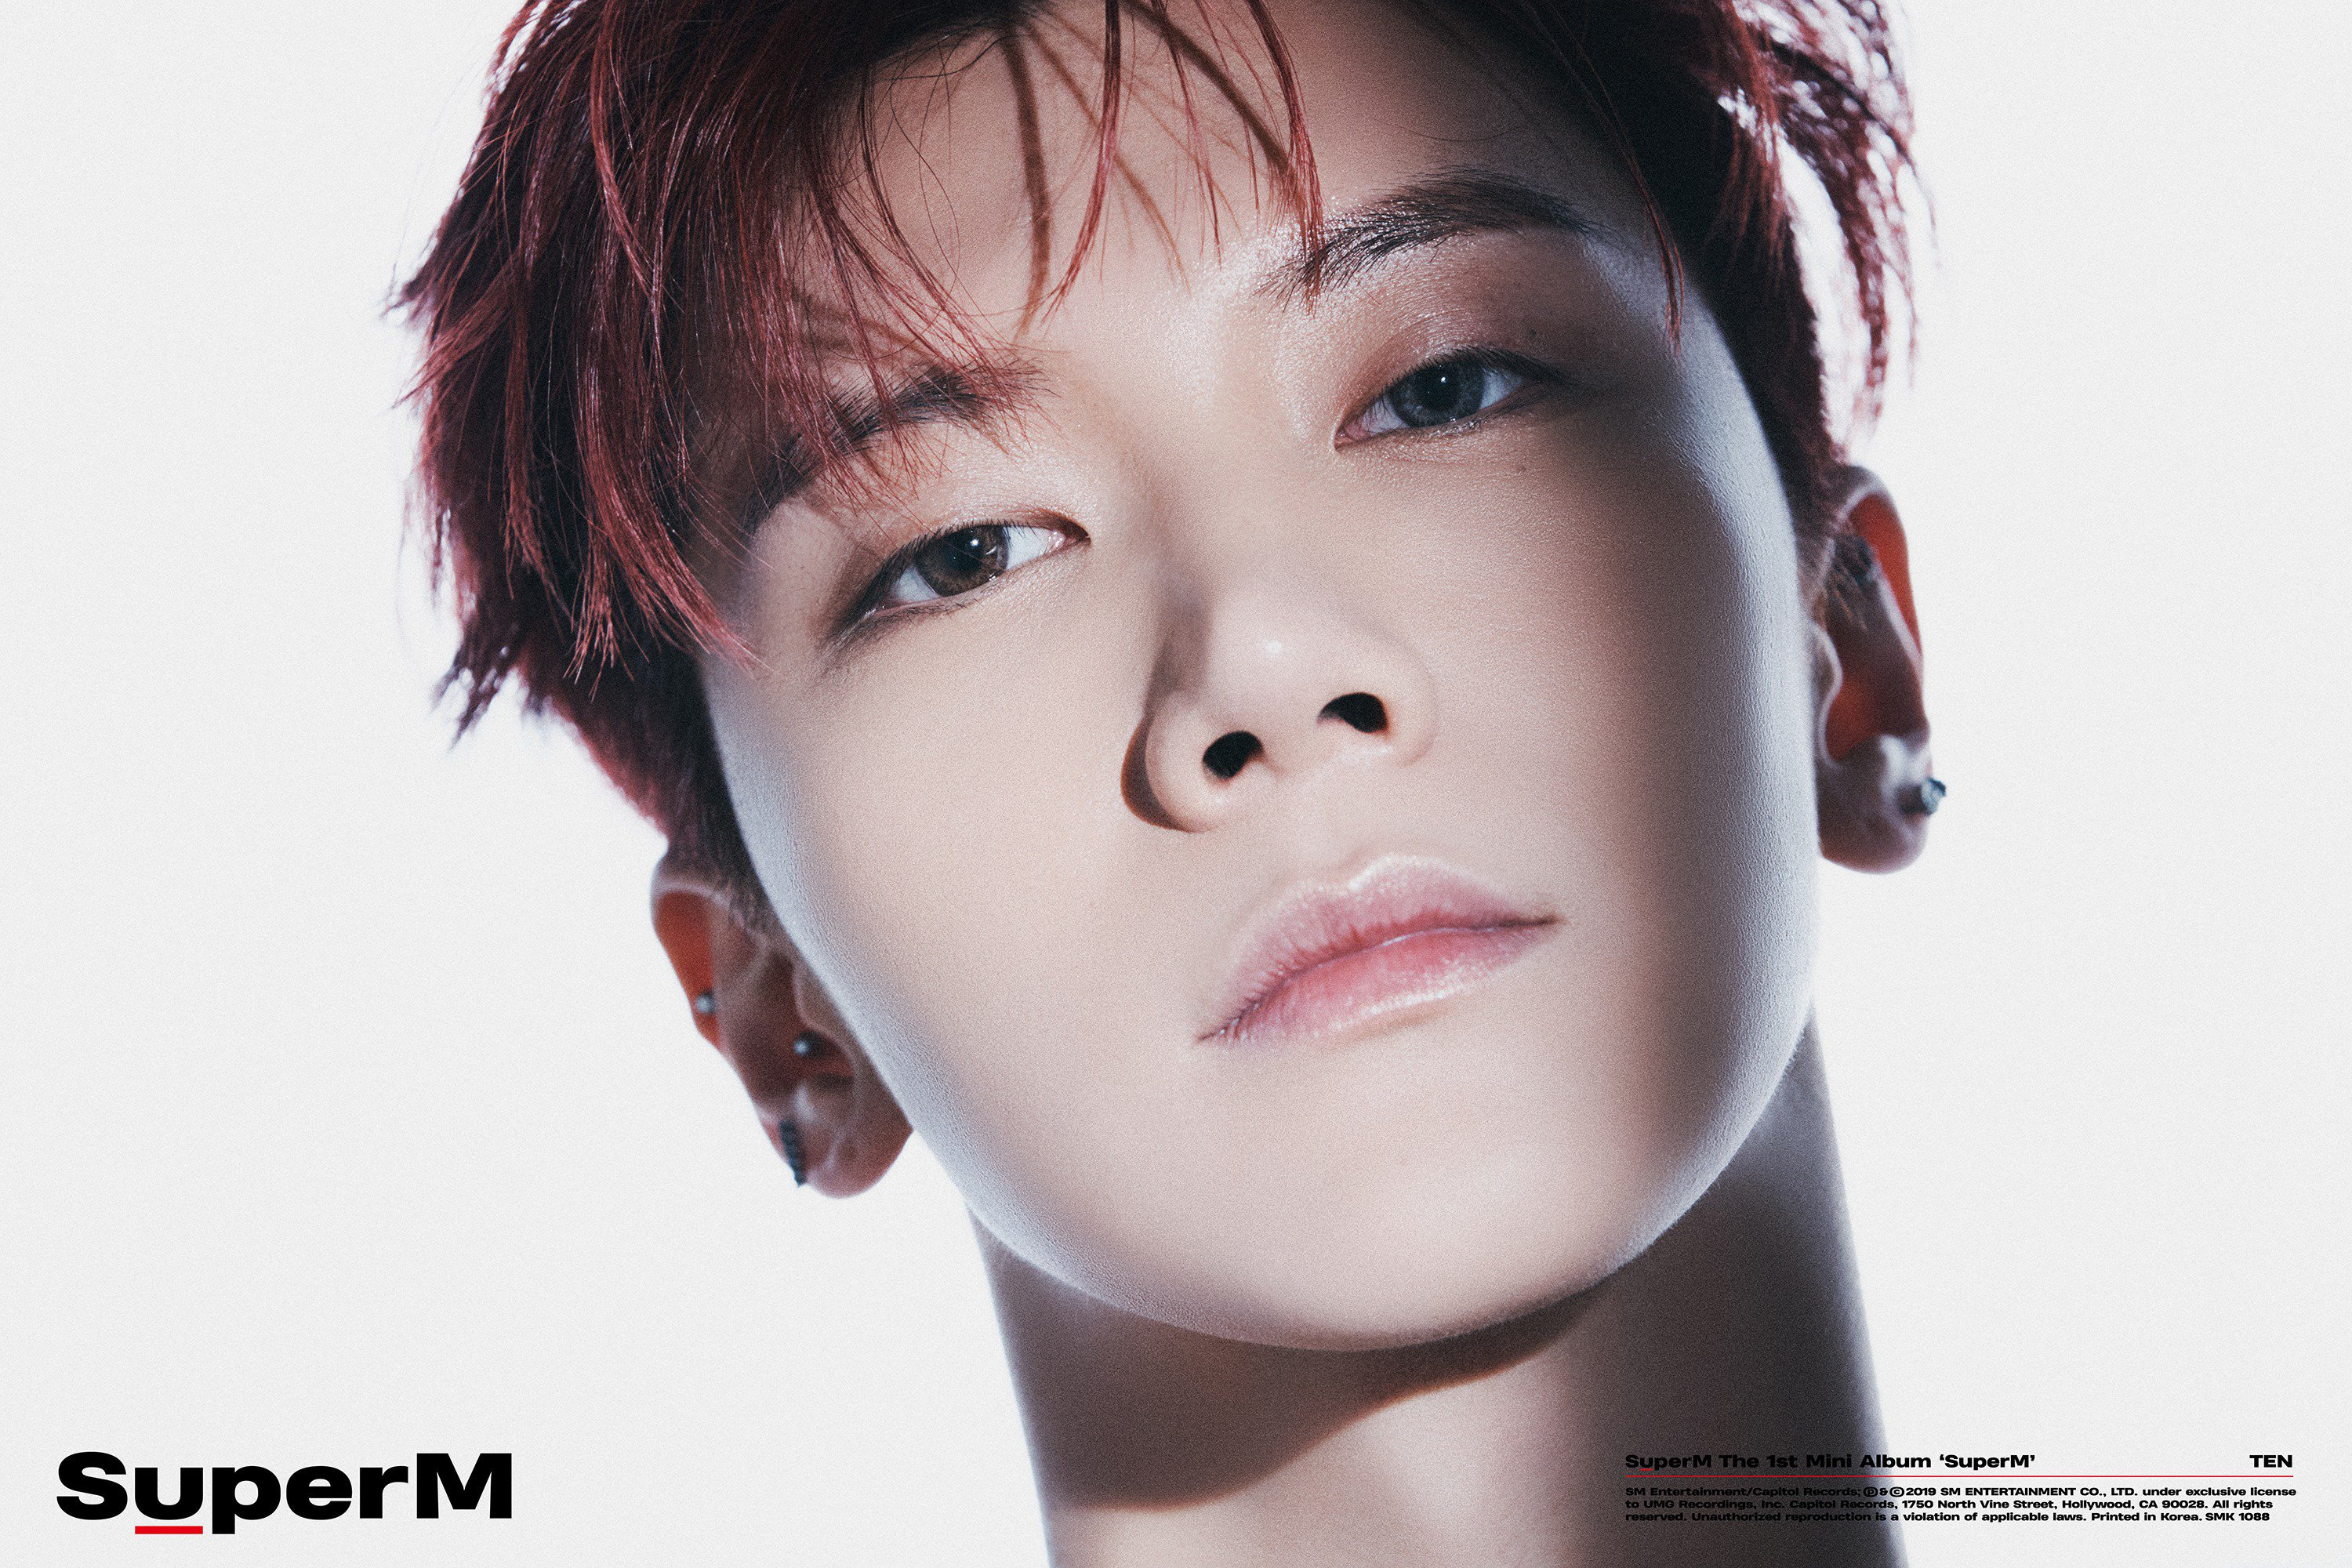 Ten flaunts his red hair and piercings in this portrait teaser photo.